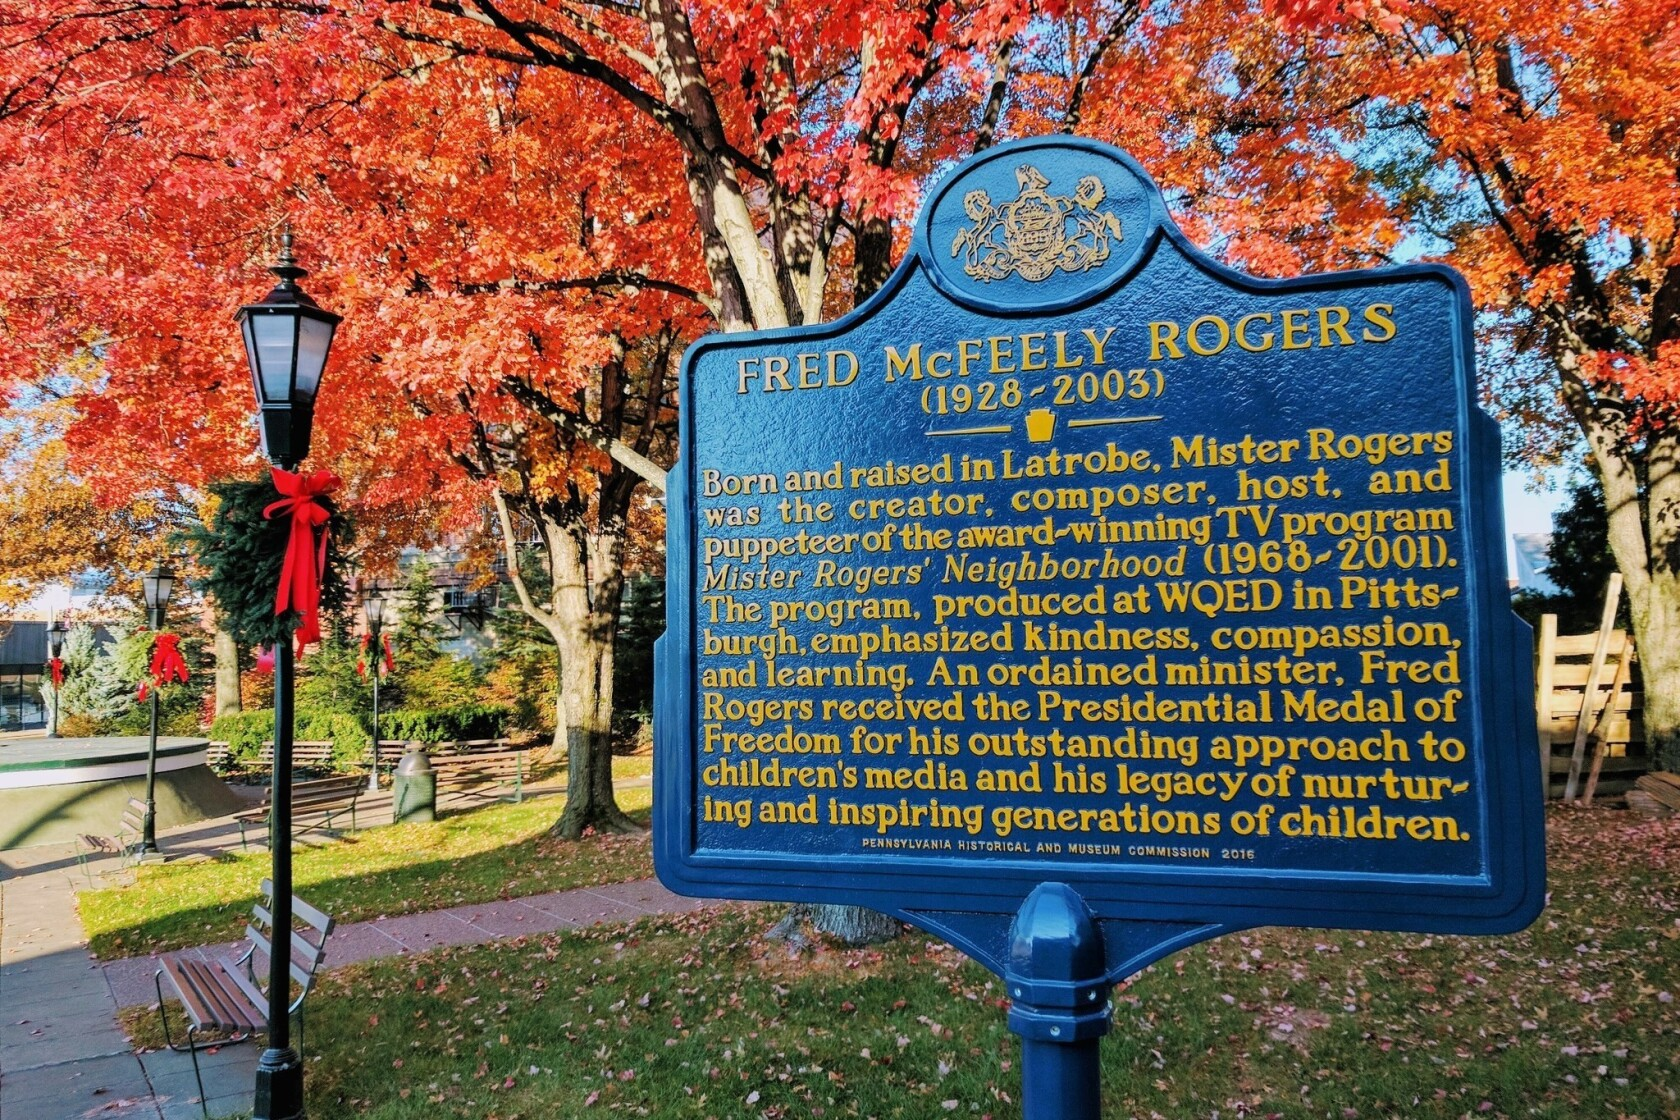 It S A Beautiful Day In Pennsylvania On Mister Rogers Trail Los Angeles Times